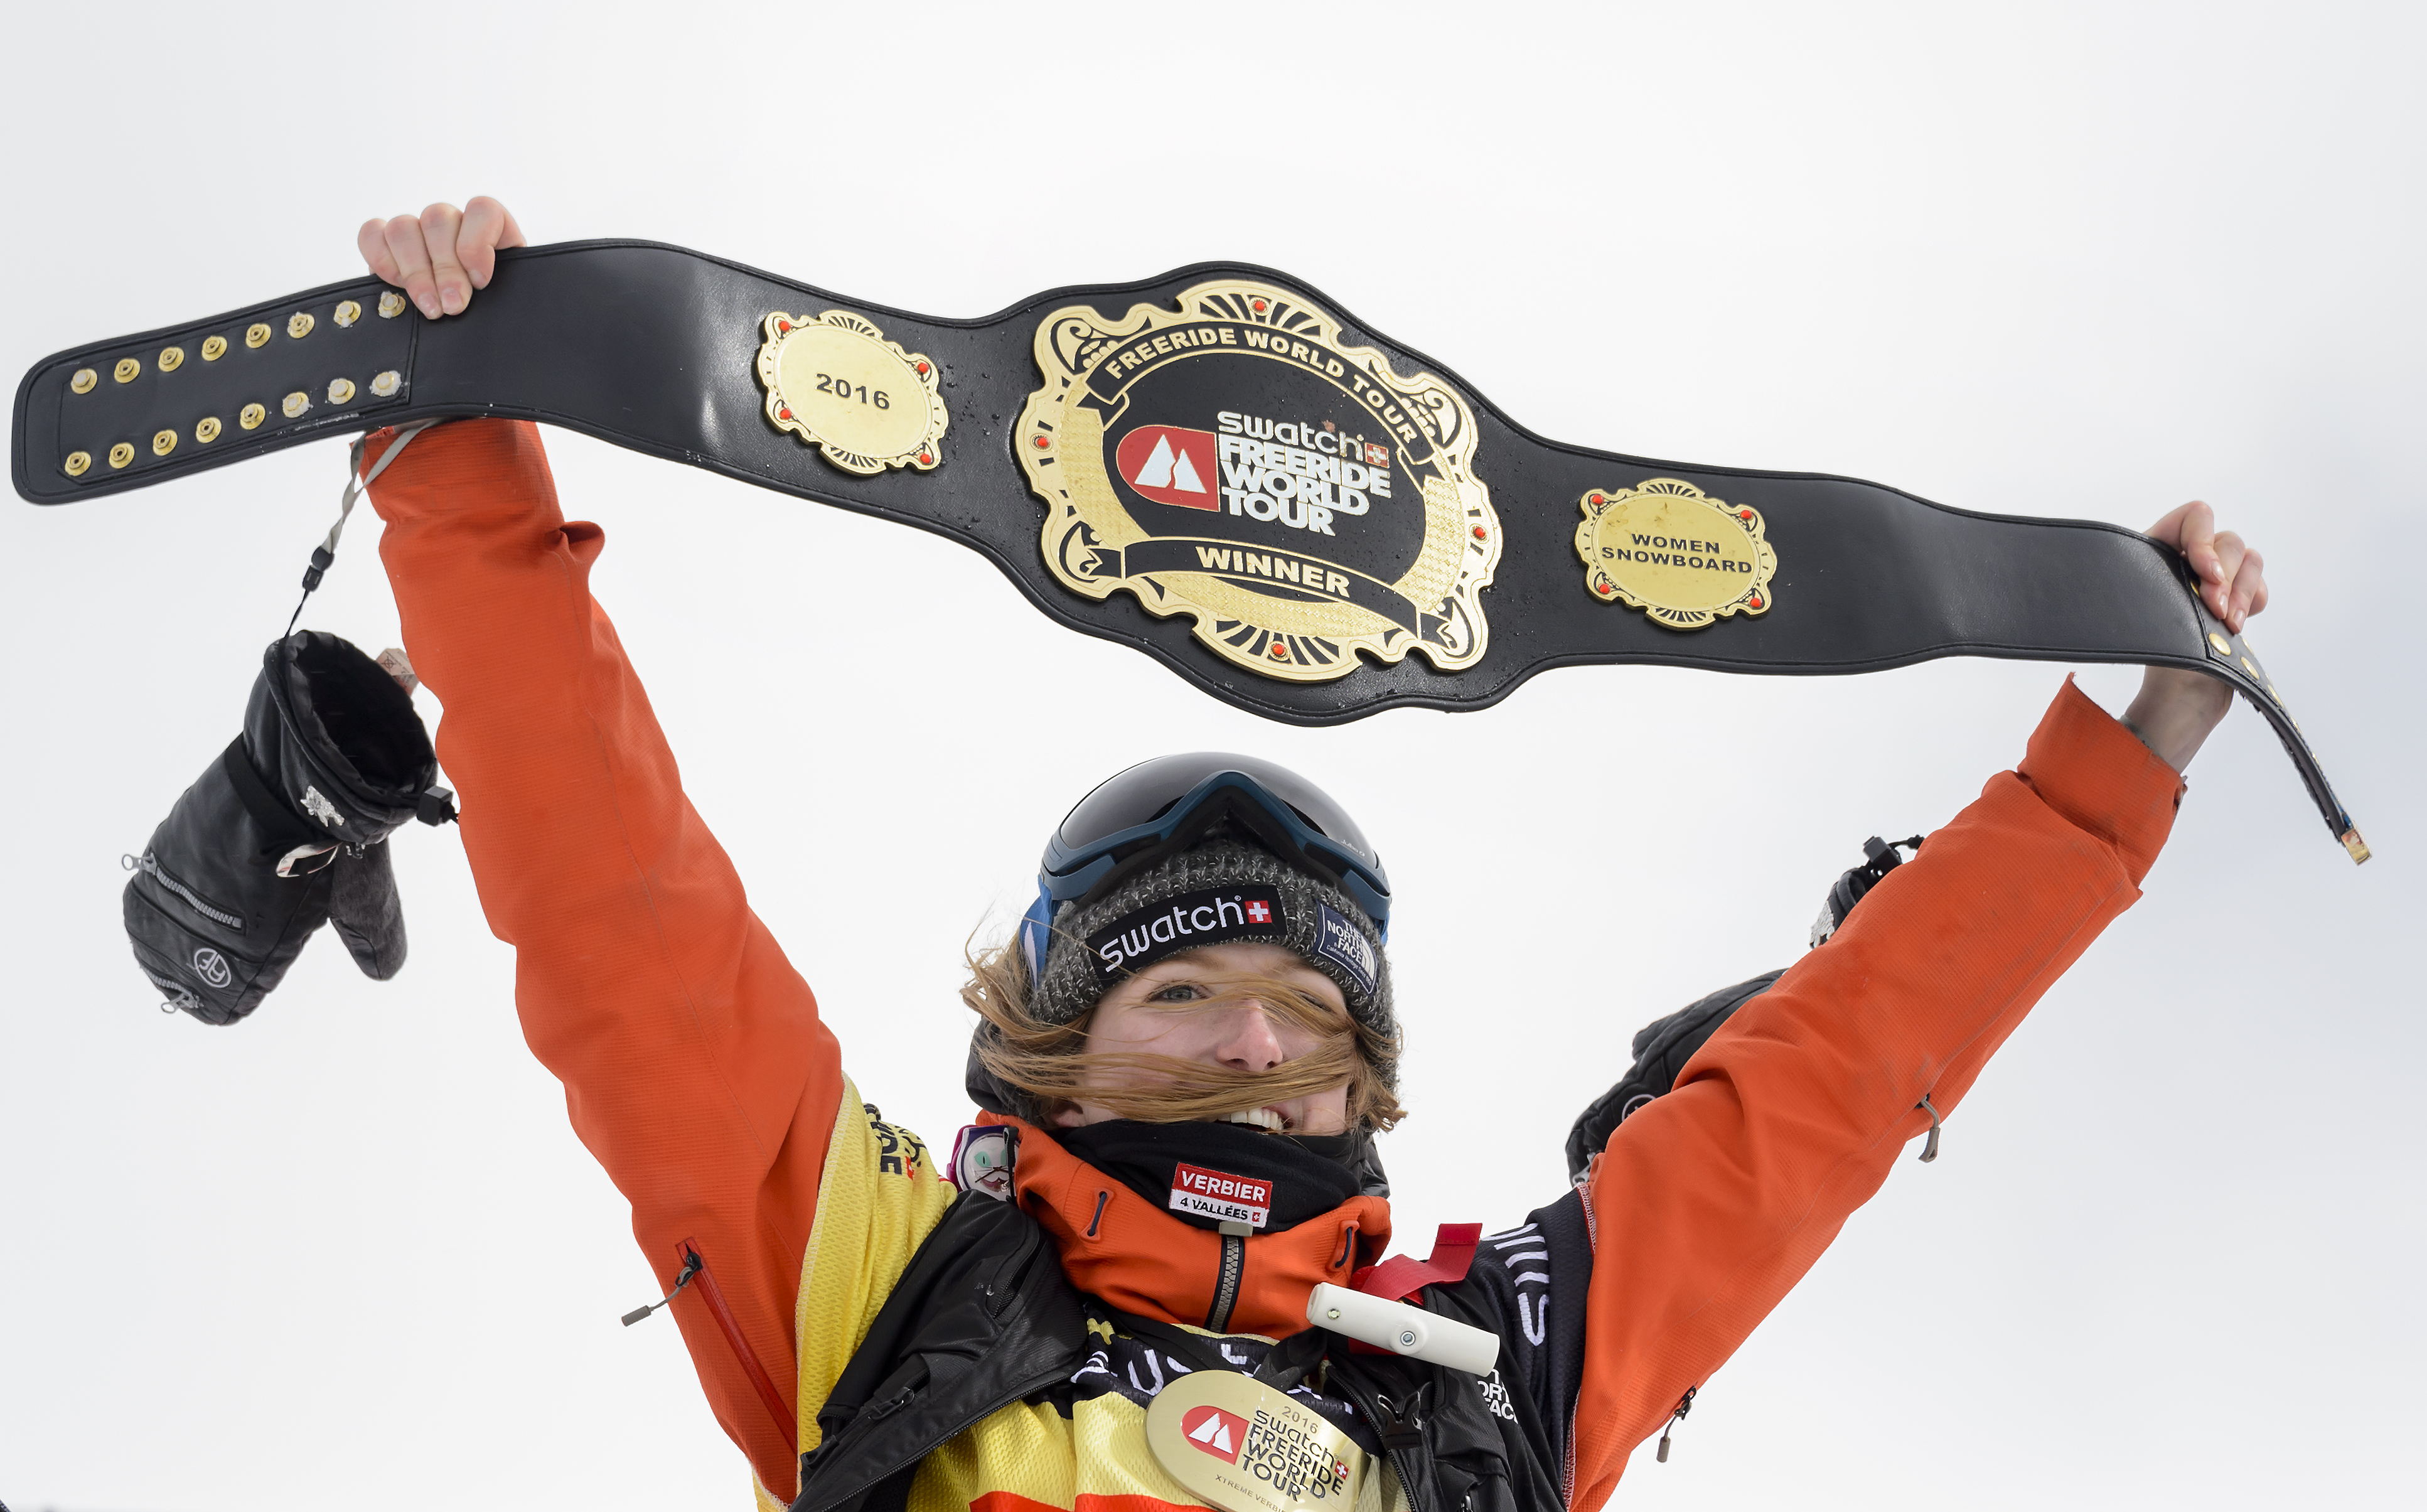 (FILES) This file photo taken on April 02, 2016 shows World champion Switzerland's Estelle Balet waving with the overall belt after she won the women's snowboard event at the Bec des Rosses during the Verbier Xtreme Freeride World Tour final above the Swiss Alps resort of Verbier.  An avalanche in the Swiss Alps on April 19, 2016 swept away two-time world extreme snowboard champion Estelle Balet to her death, police said. The 21-year-old Swiss woman, who had won her second title on the Freeride World Tour only two weeks ago, was making a film when she was killed, Swiss police said in a statement. Balet was speeding down a slope on her snowboard when the avalanche started and carried her away, police added.  / AFP PHOTO / FABRICE COFFRINI